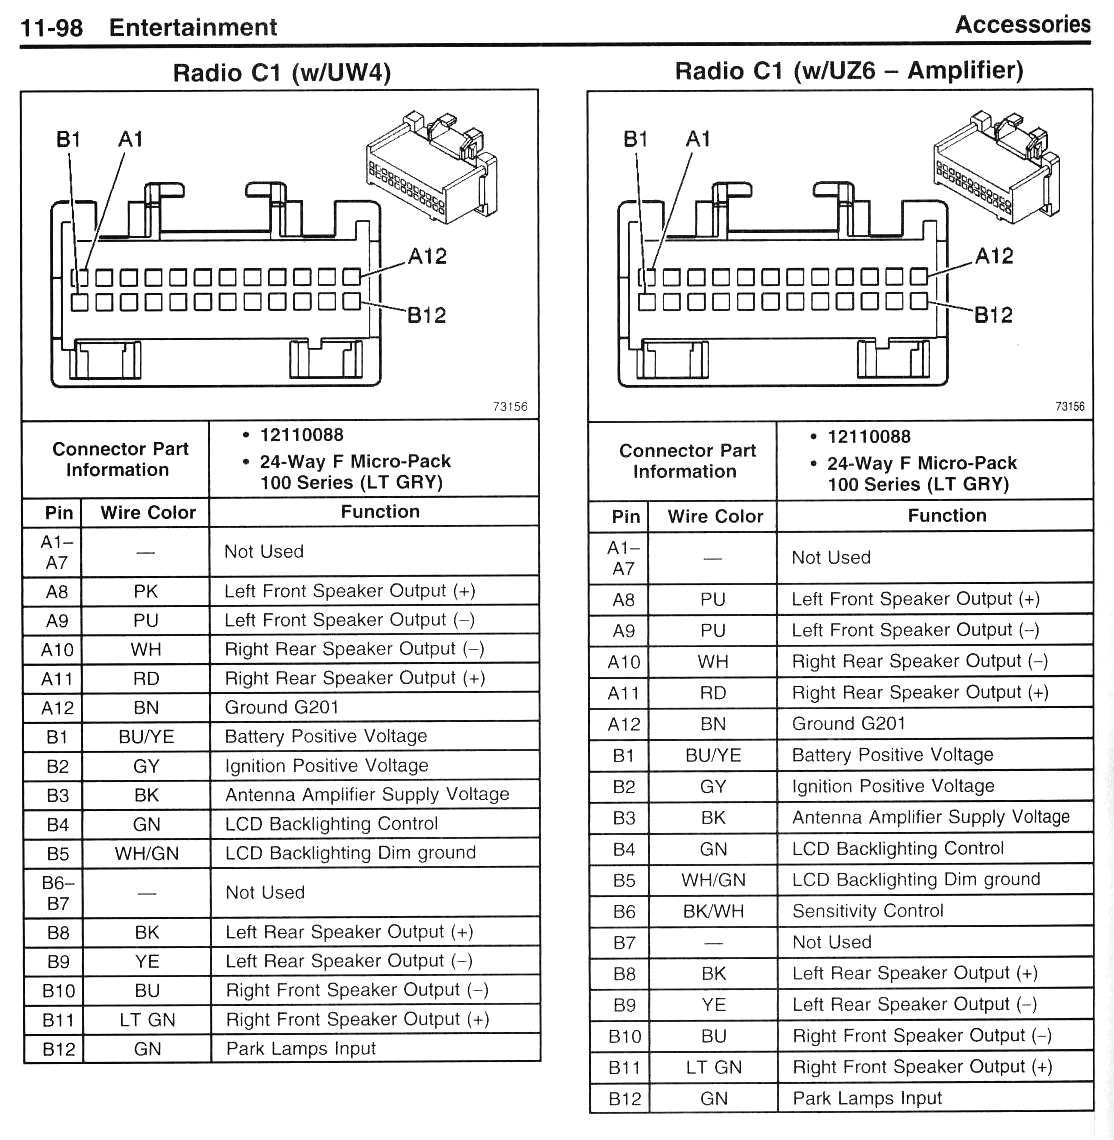 2004 Chevy Cavalier Radio Wiring Diagram - Wiring Diagram Data Oreo - 2004 Chevy Cavalier Stereo Wiring Diagram